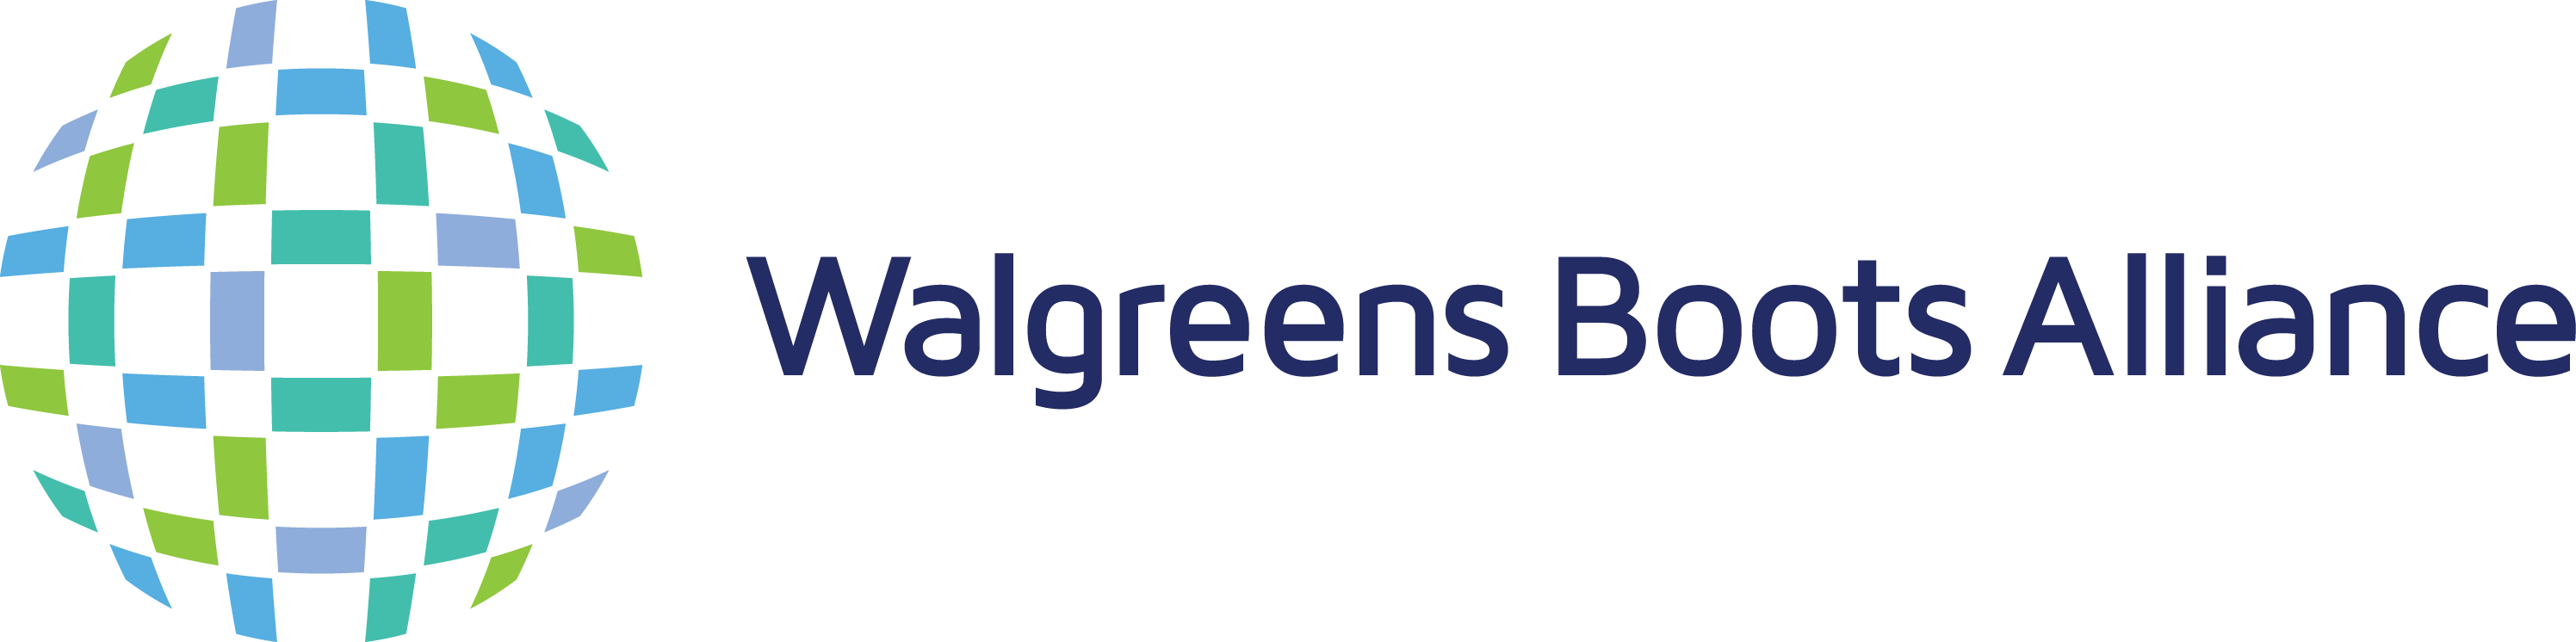 Walgreen Boots Alliance, client SAP Digital Business Services, bénéficie d'un support pour sa transformation et d'une plateforme de traitement In-Memory